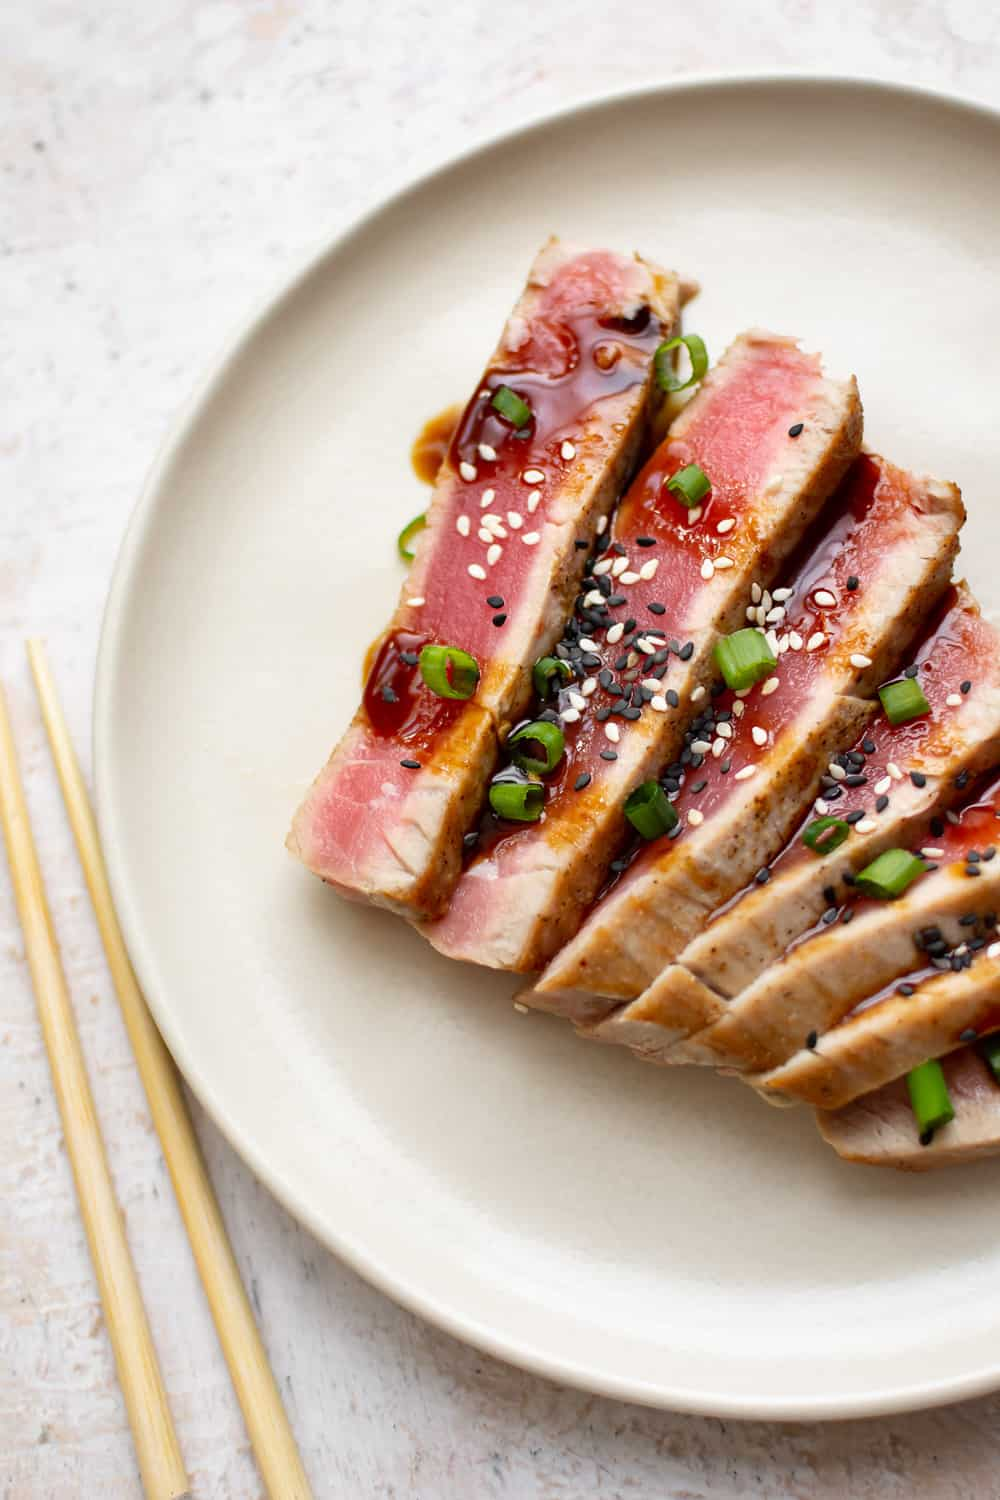 seared ahi tuna cut up and plated